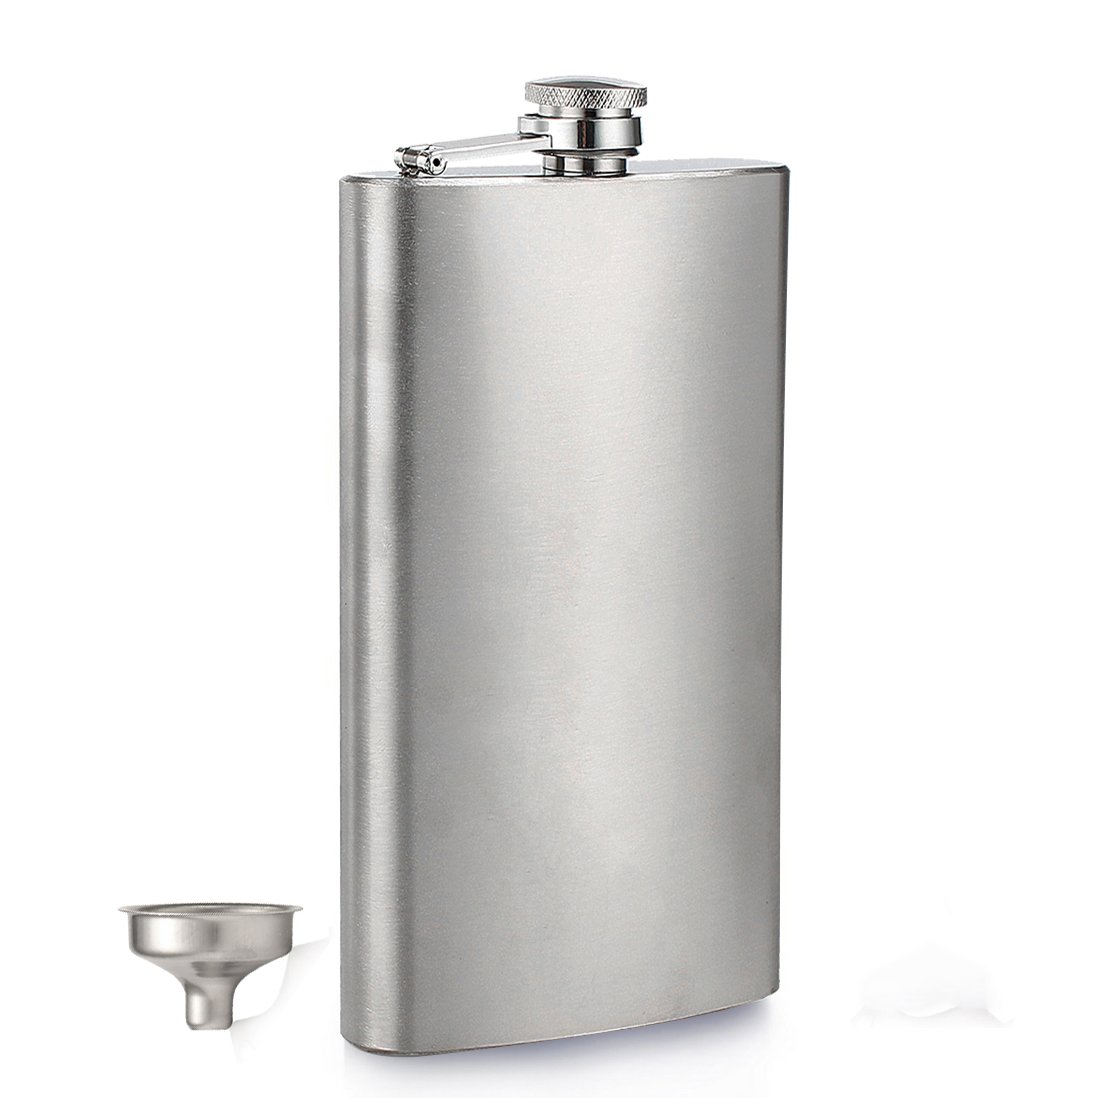 Menghao 12 oz Steel Stainless Hip Flask Silver Free Funnel Liquor Drinking of Alcohol Whiskey Gift for Men